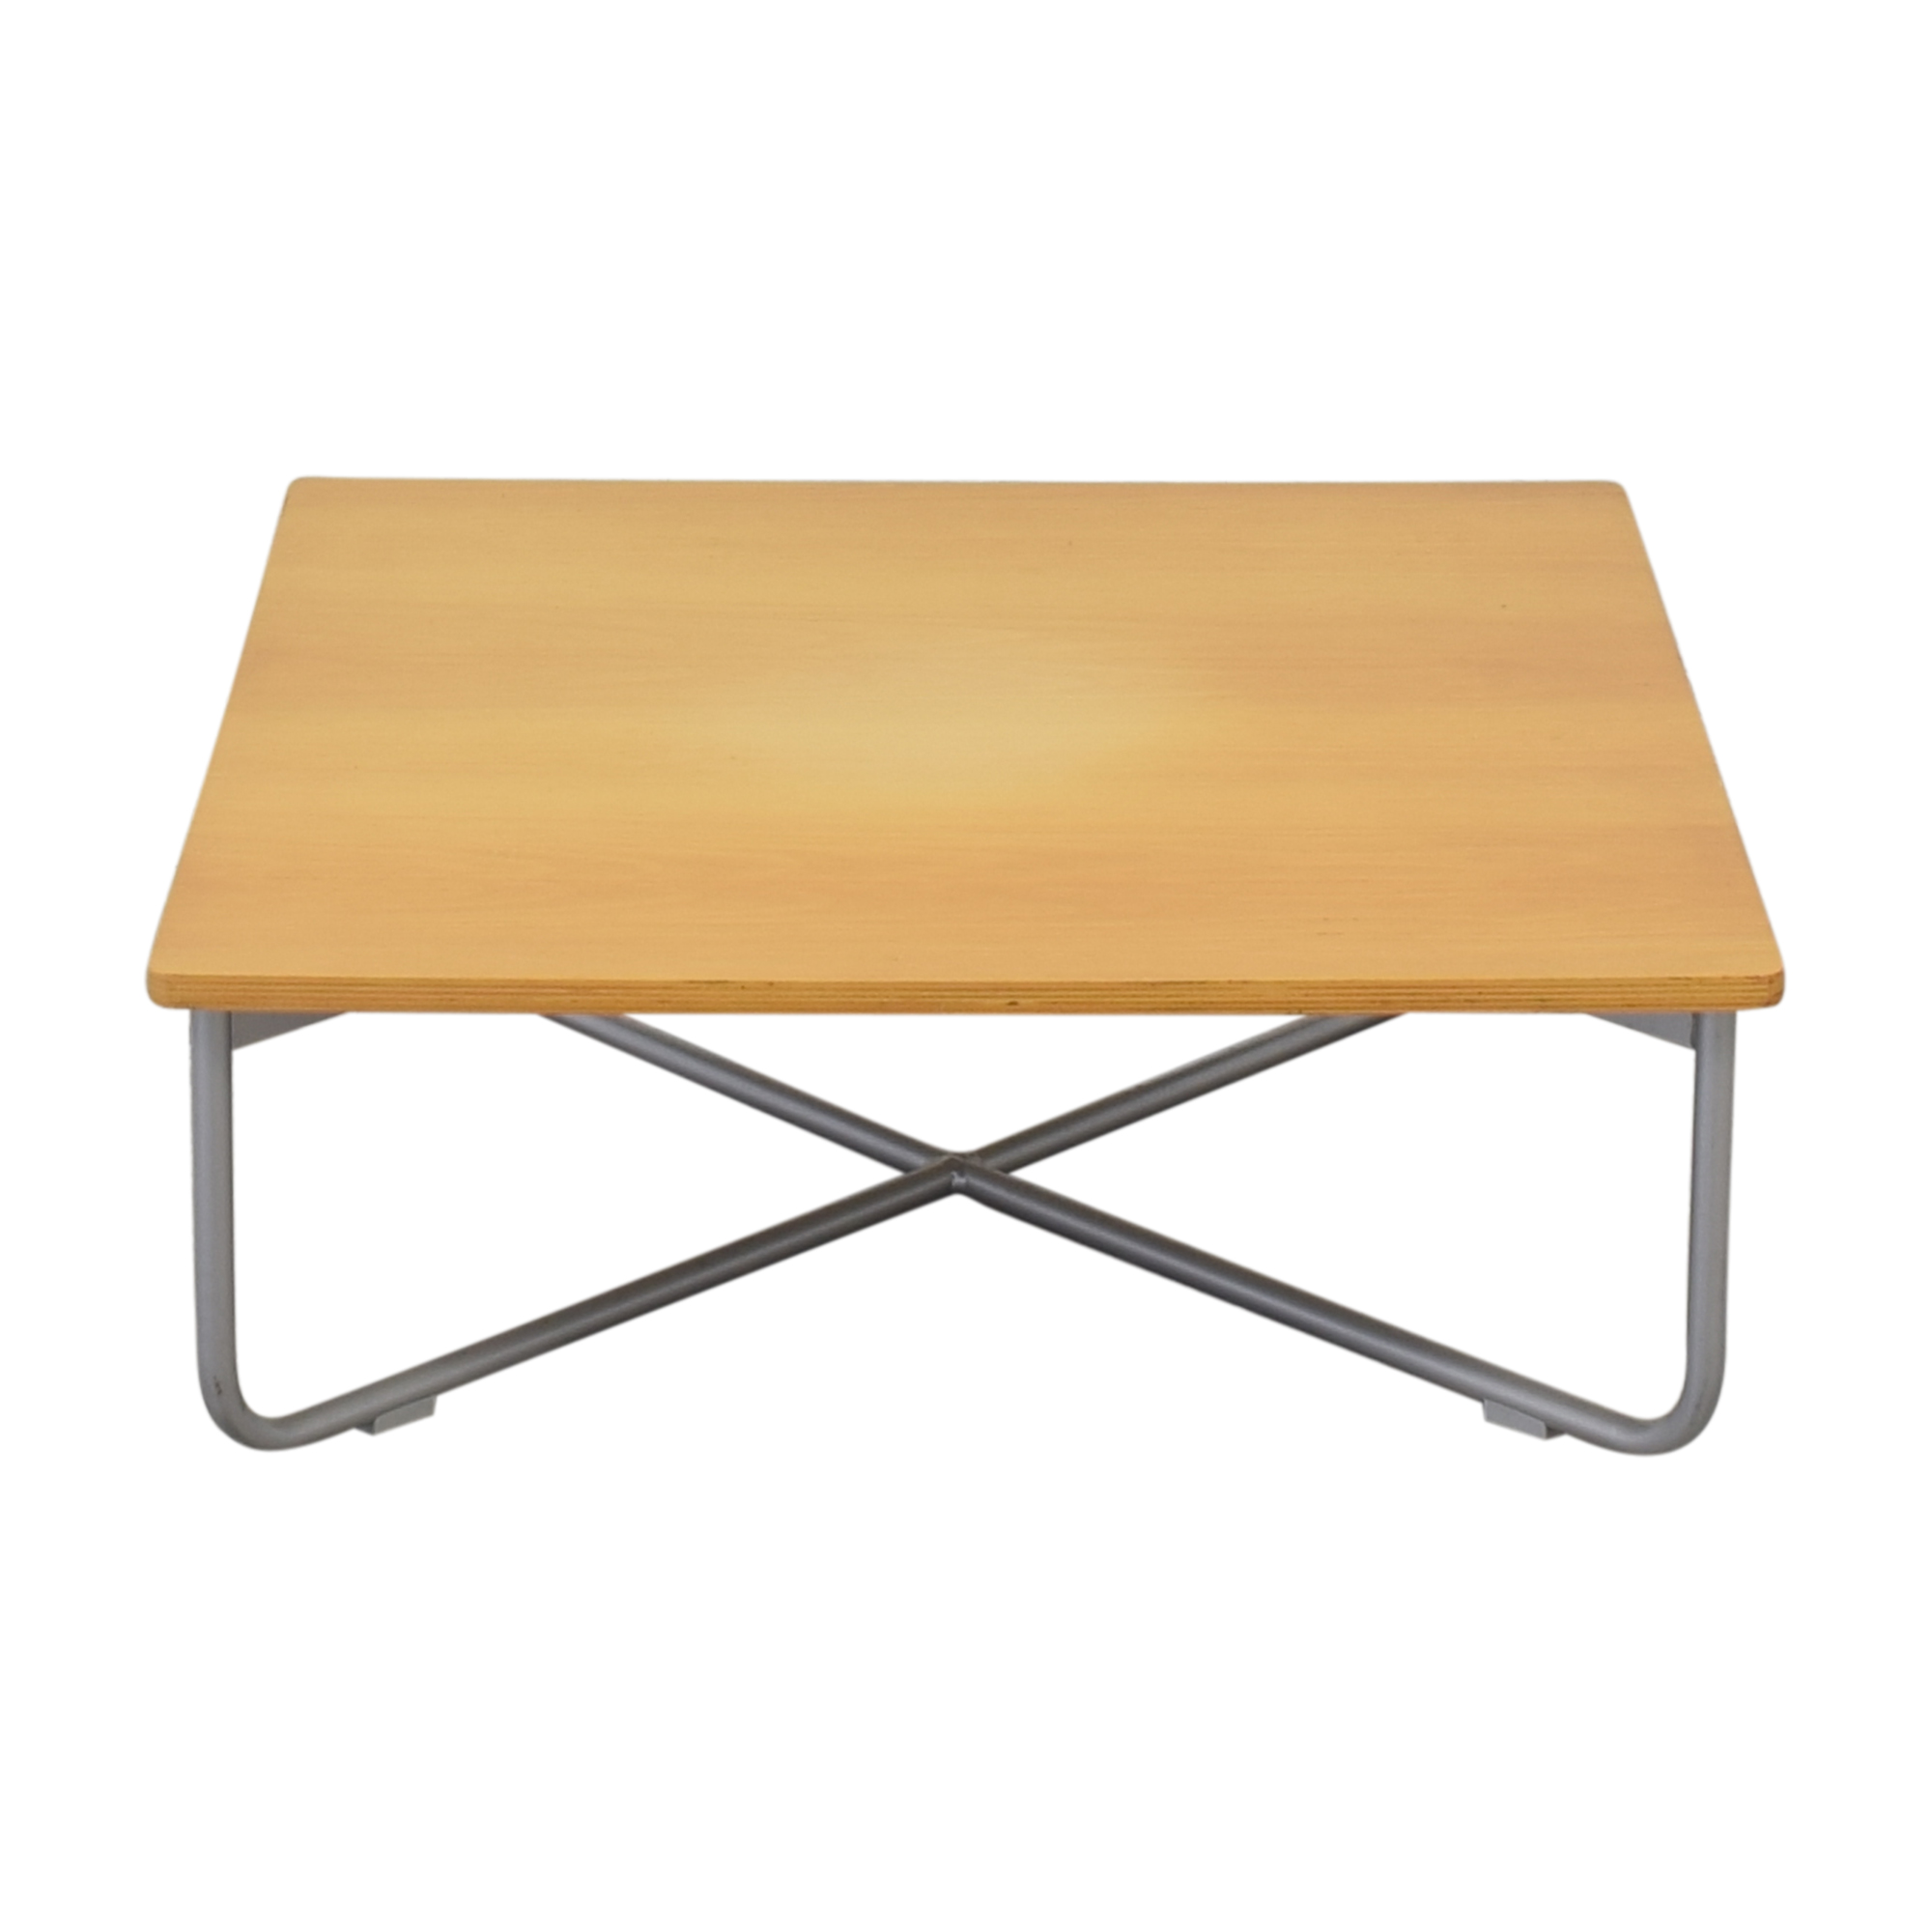 Swedese Swedese Havanna Small Table